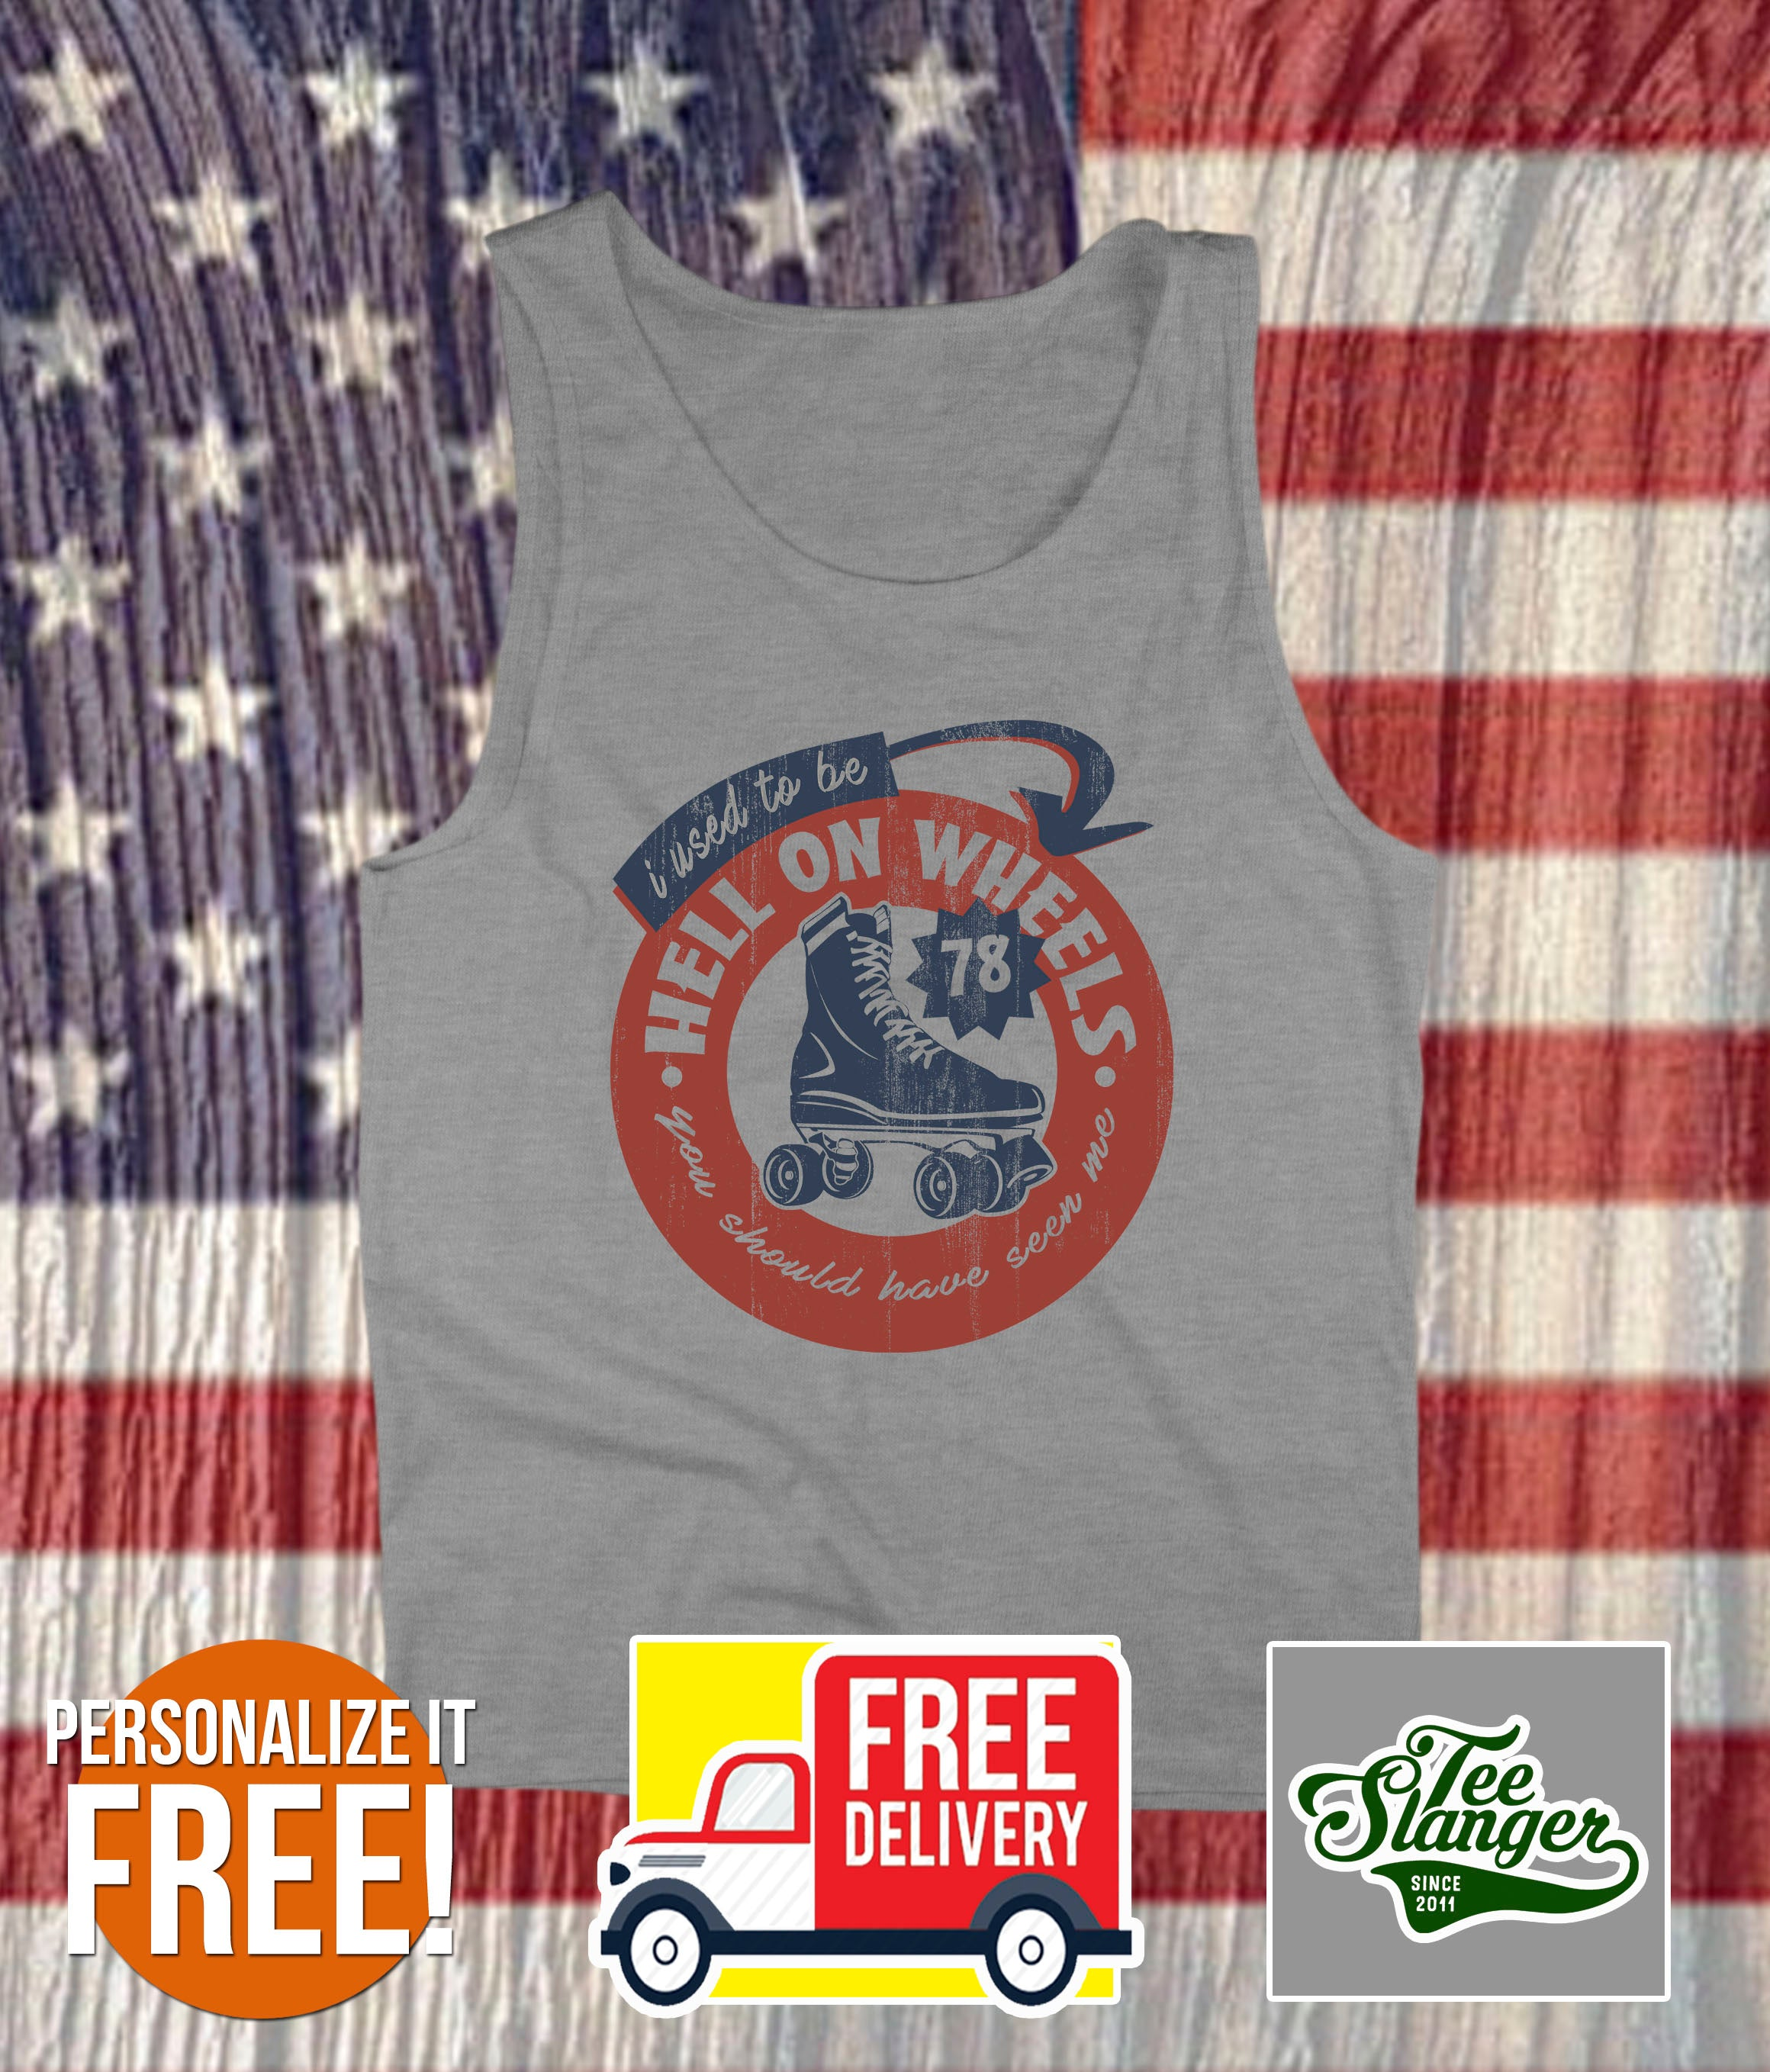 PERSONALIZED HELL ON WHEELS TANK TOP